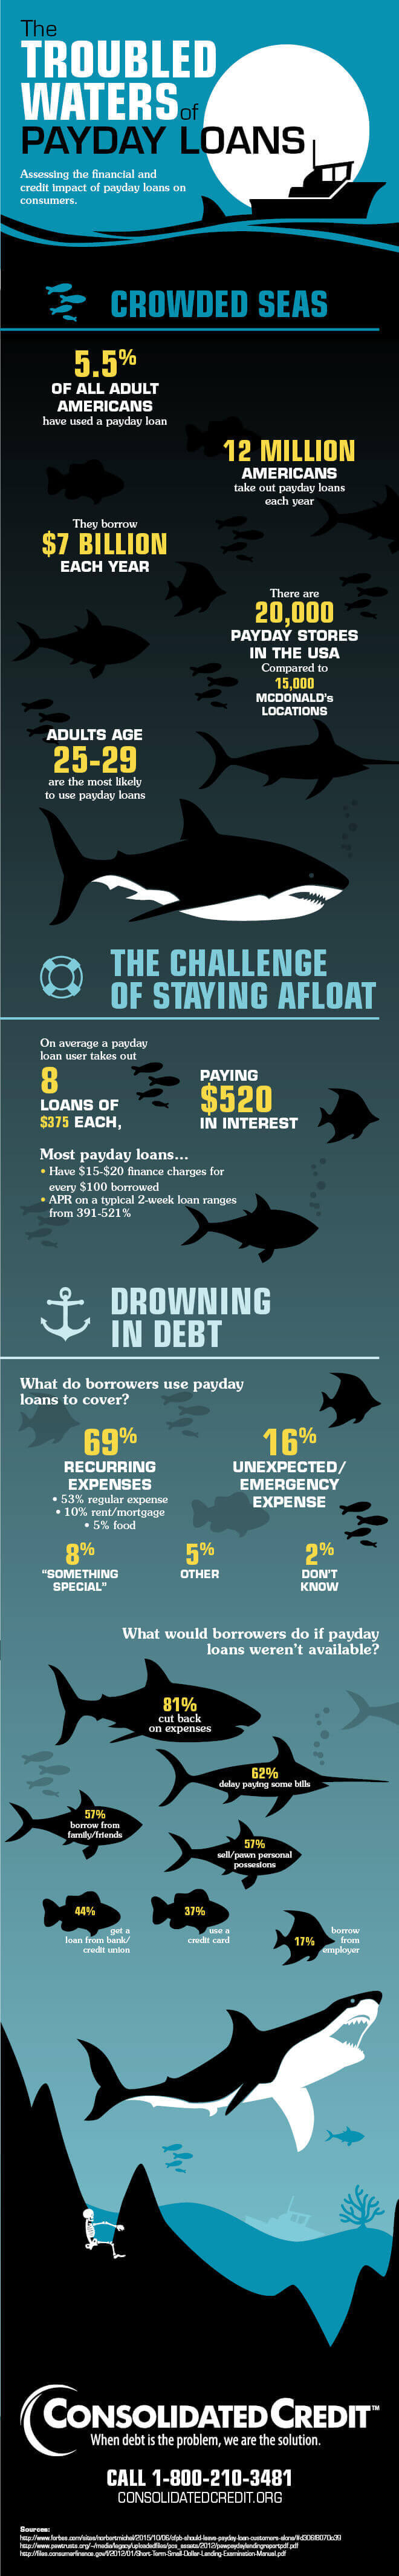 A closer look at payday loans and debt consolidation